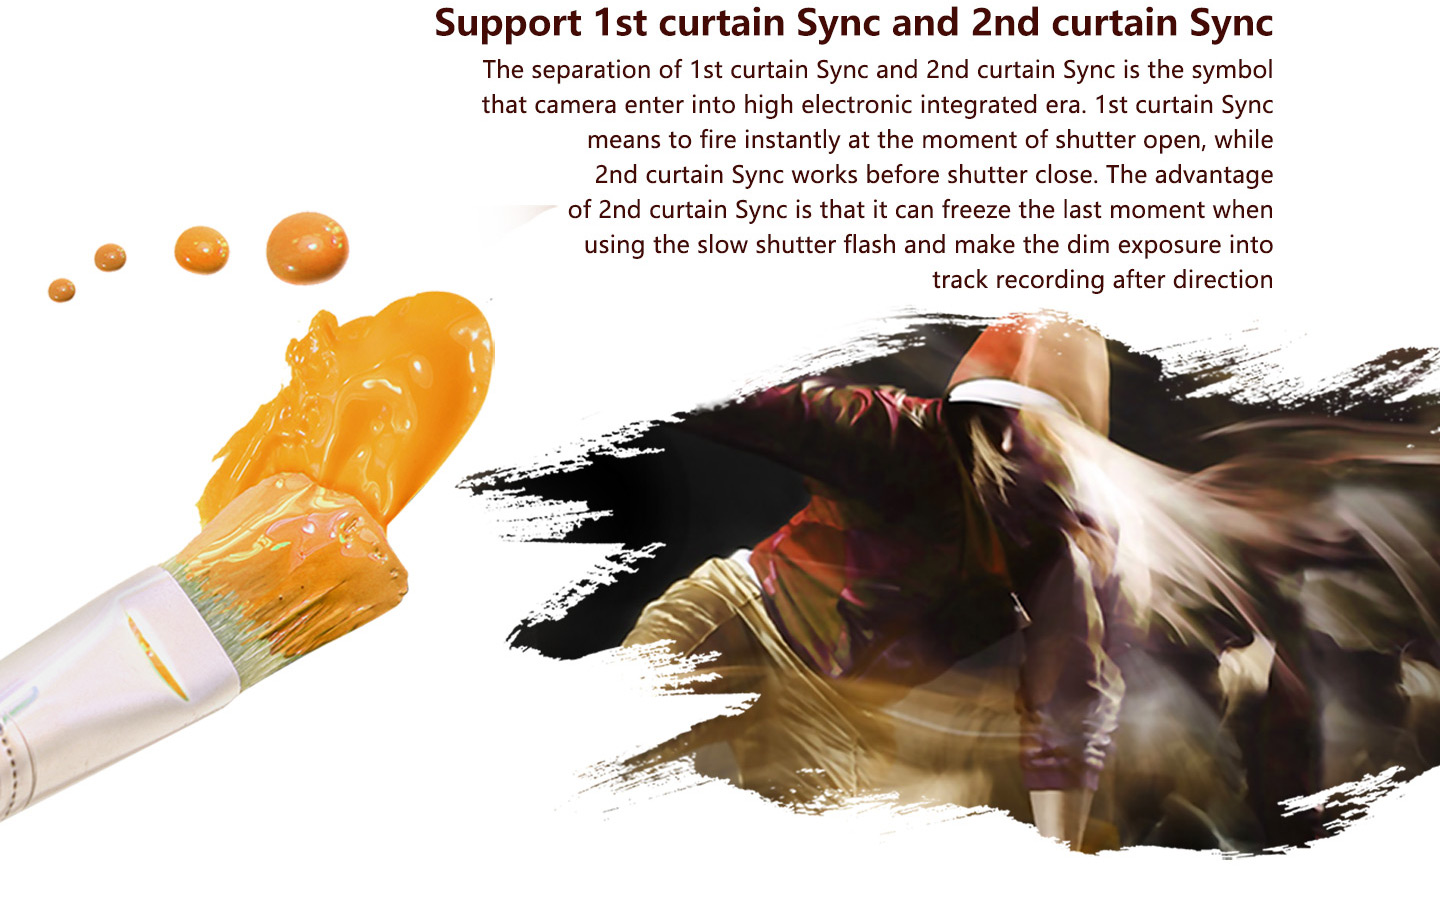 Support 1st curtain Sync and 2nd curtain Sync